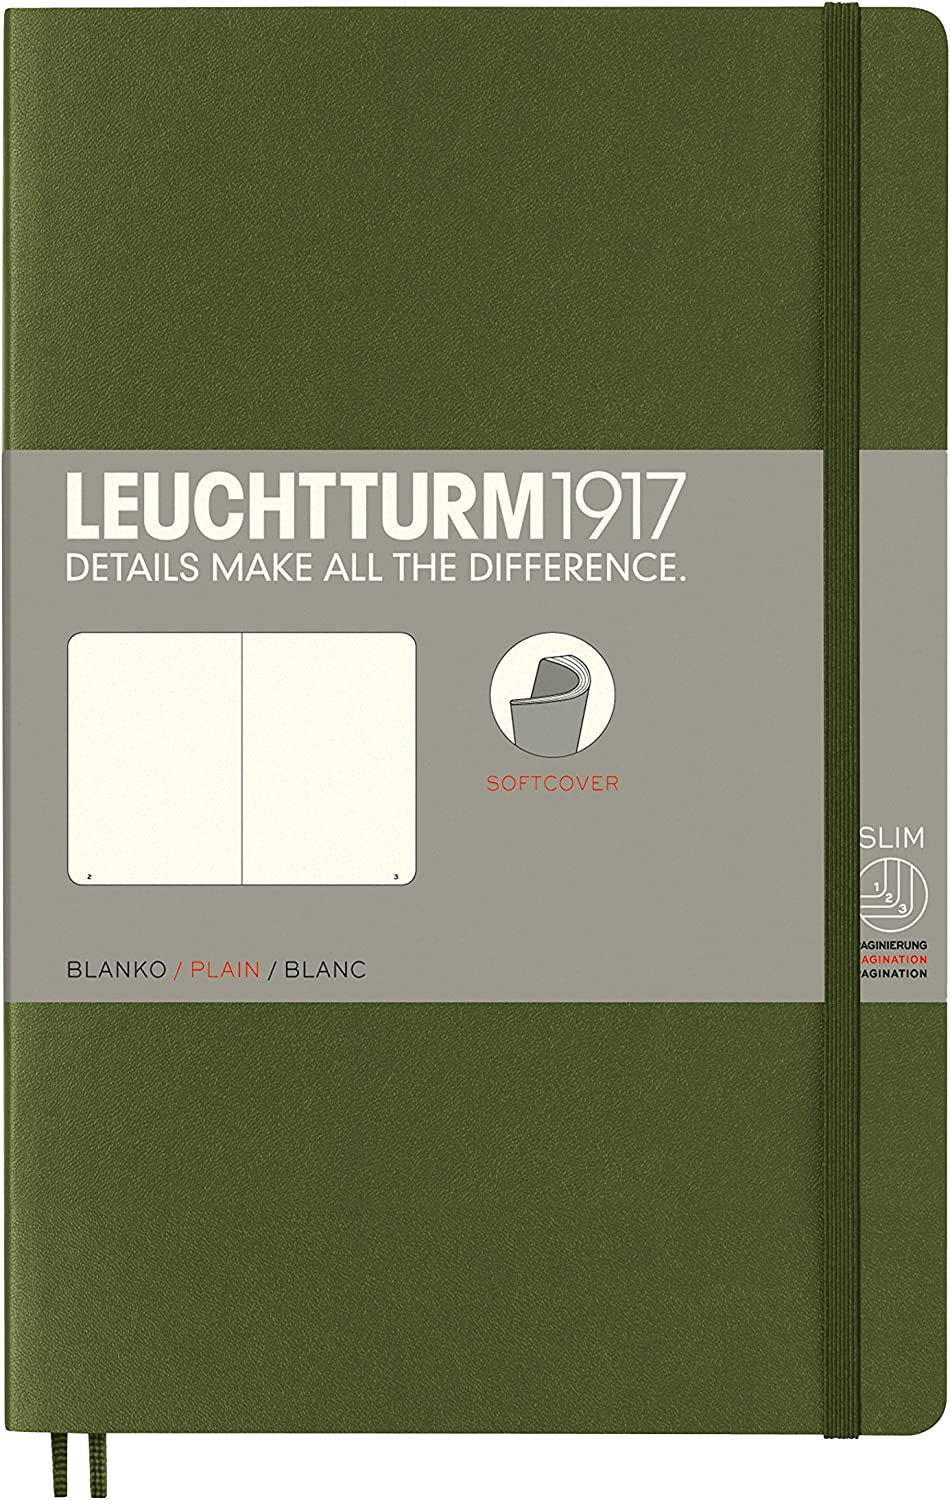 Leuchtturm1917 B6 Softcover Notebook, 5 by 7.5 inches, 123 Blank Pages, Army (358322)